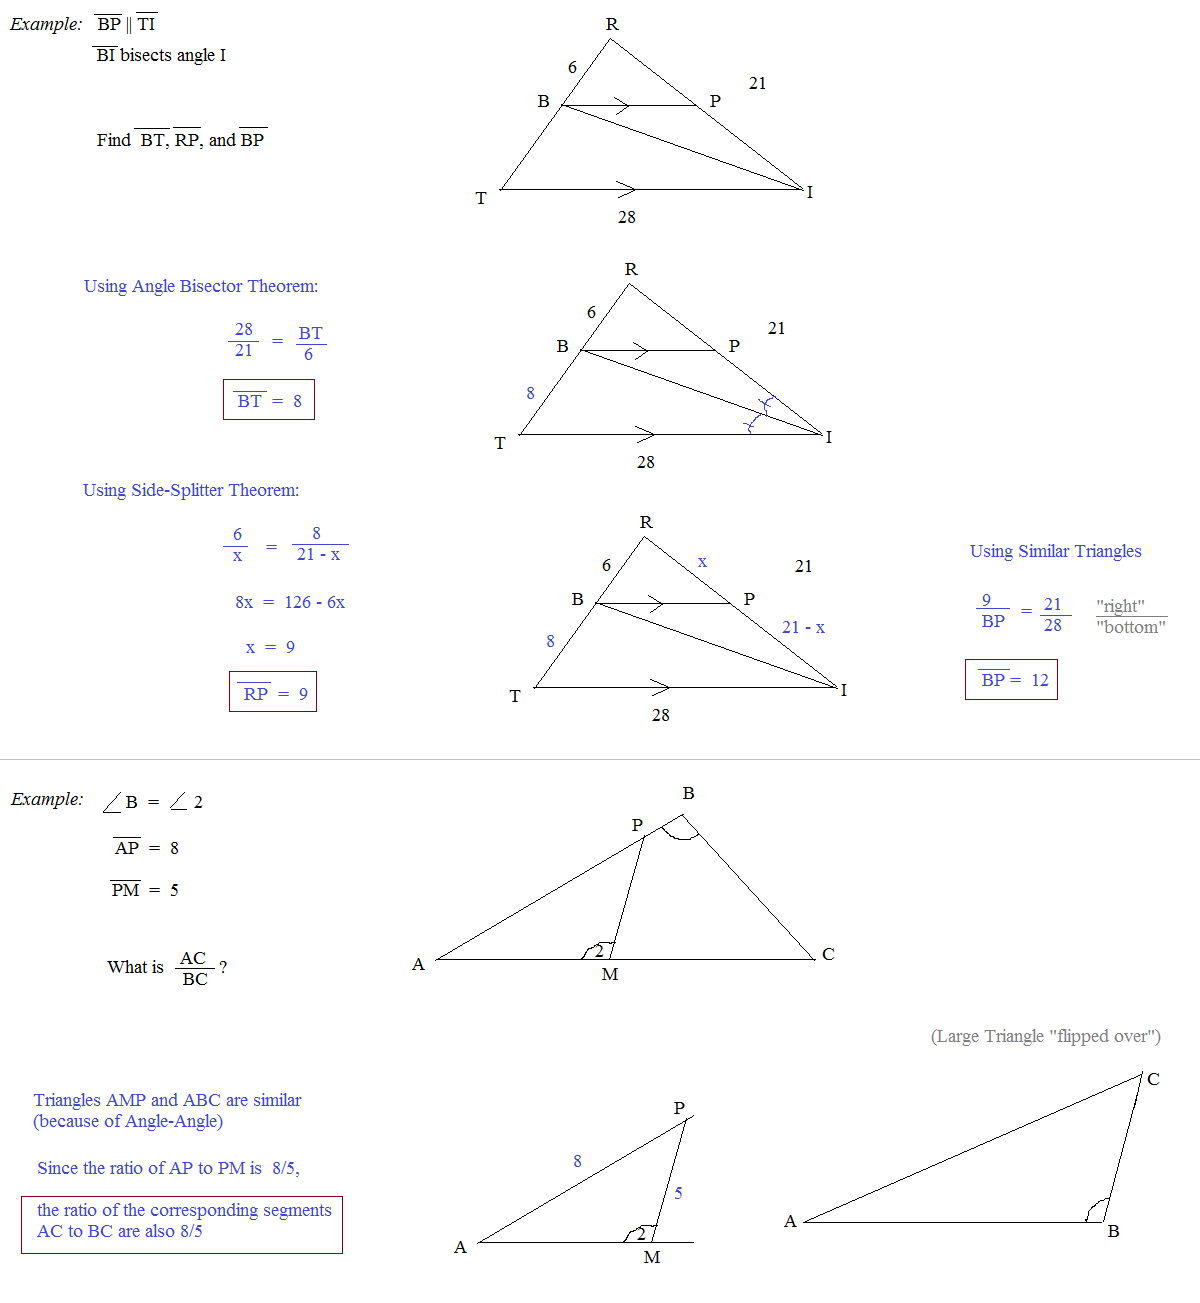 worksheet Similar Triangles Proportions Worksheet math plane similarity and proportions review questions concepts to remember proportion examples side splitter angle bisector